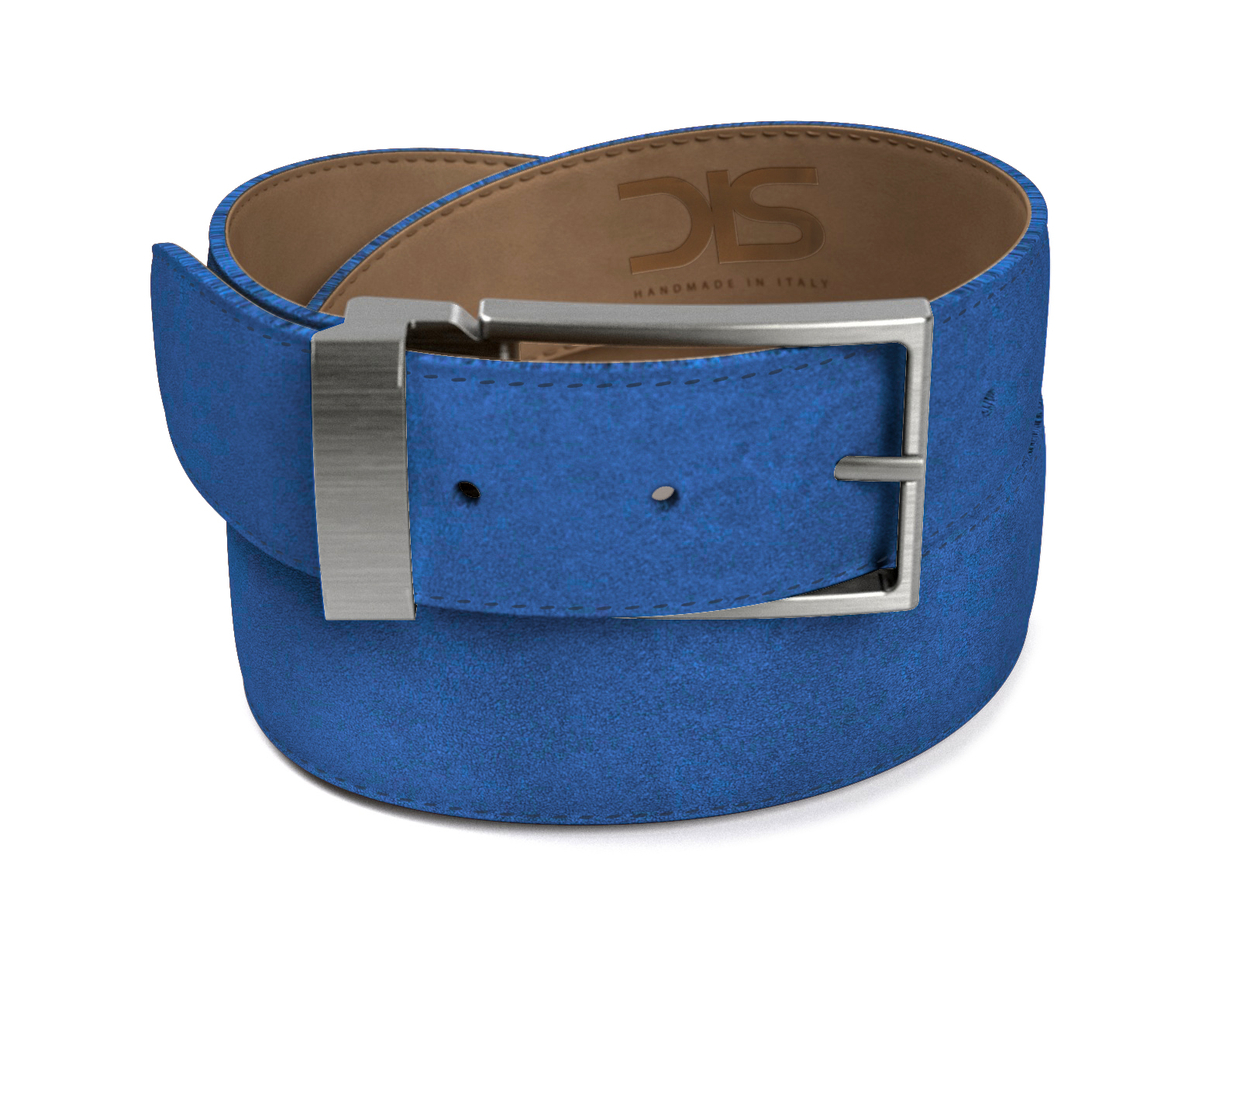 Indingo suede leather belt with opaque buckle